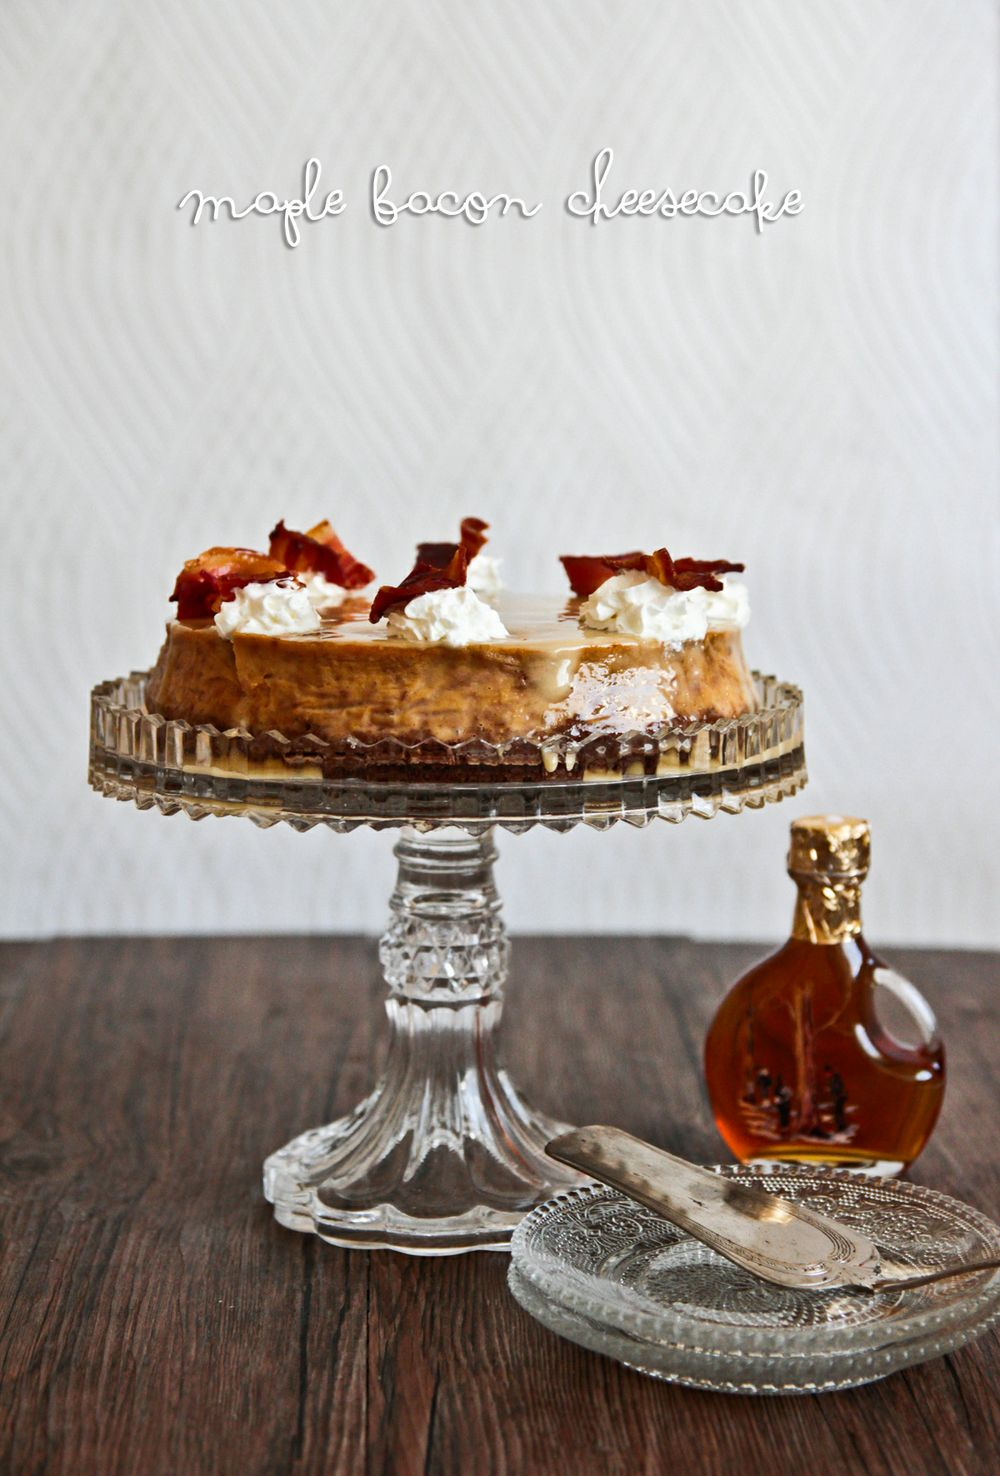 m-maple-bacon-cheesecake-3-